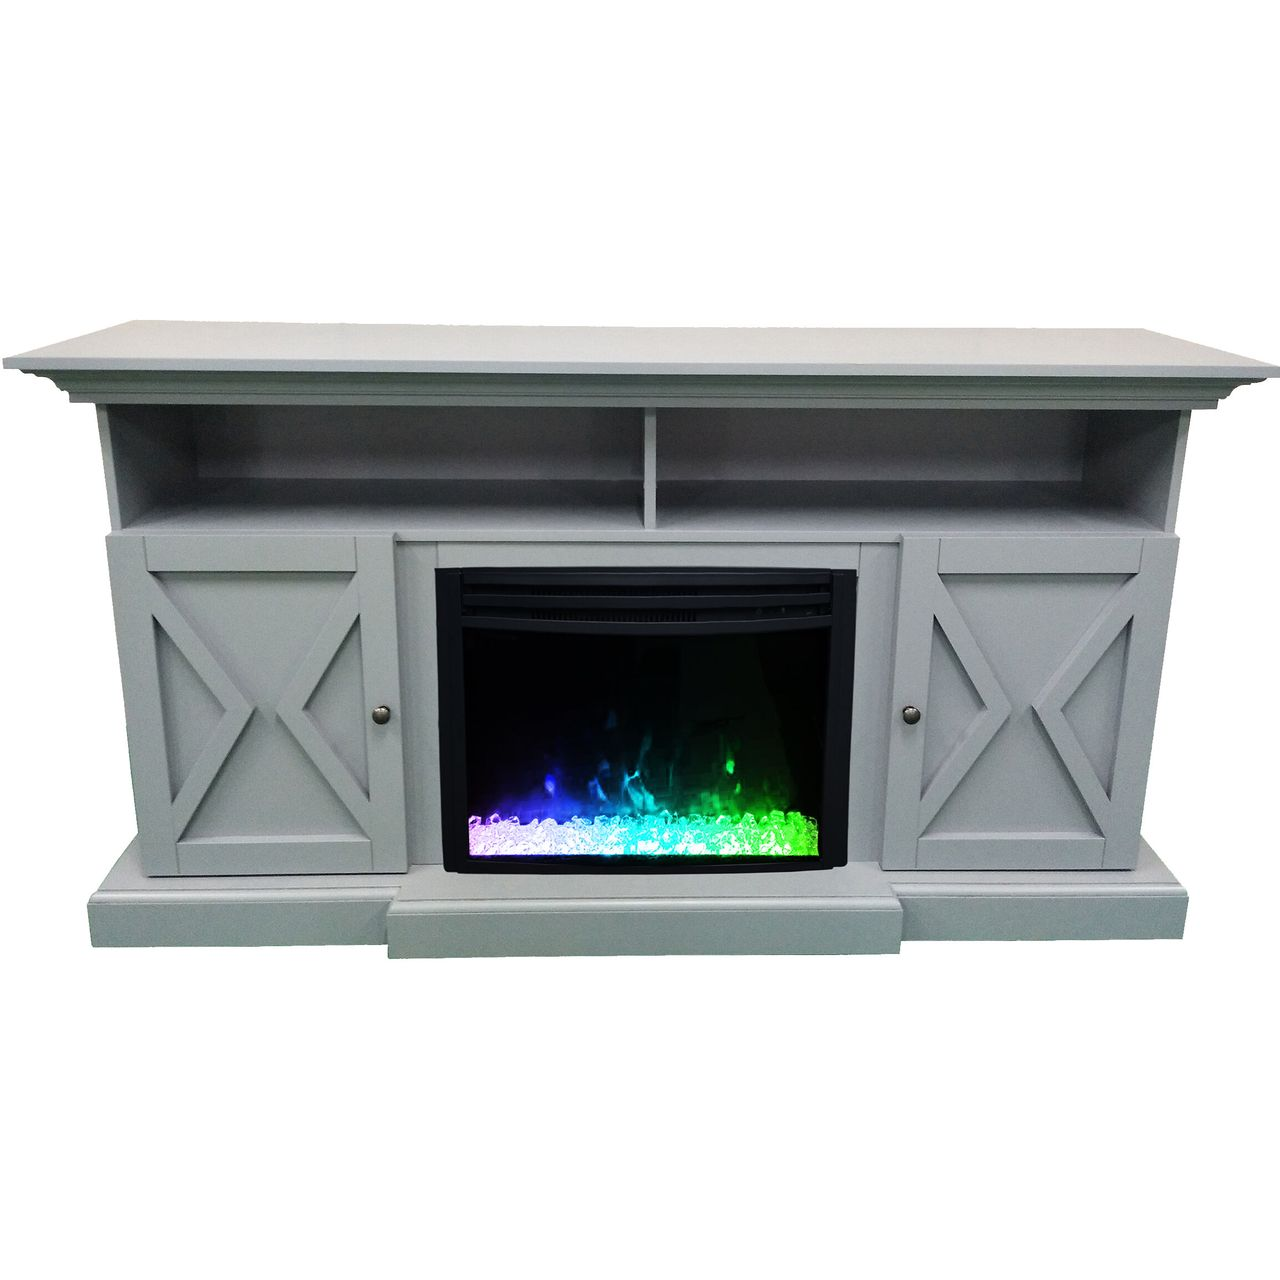 "Cambridge 62"" Summit Electric Fireplace Mantel - Slate Blue"